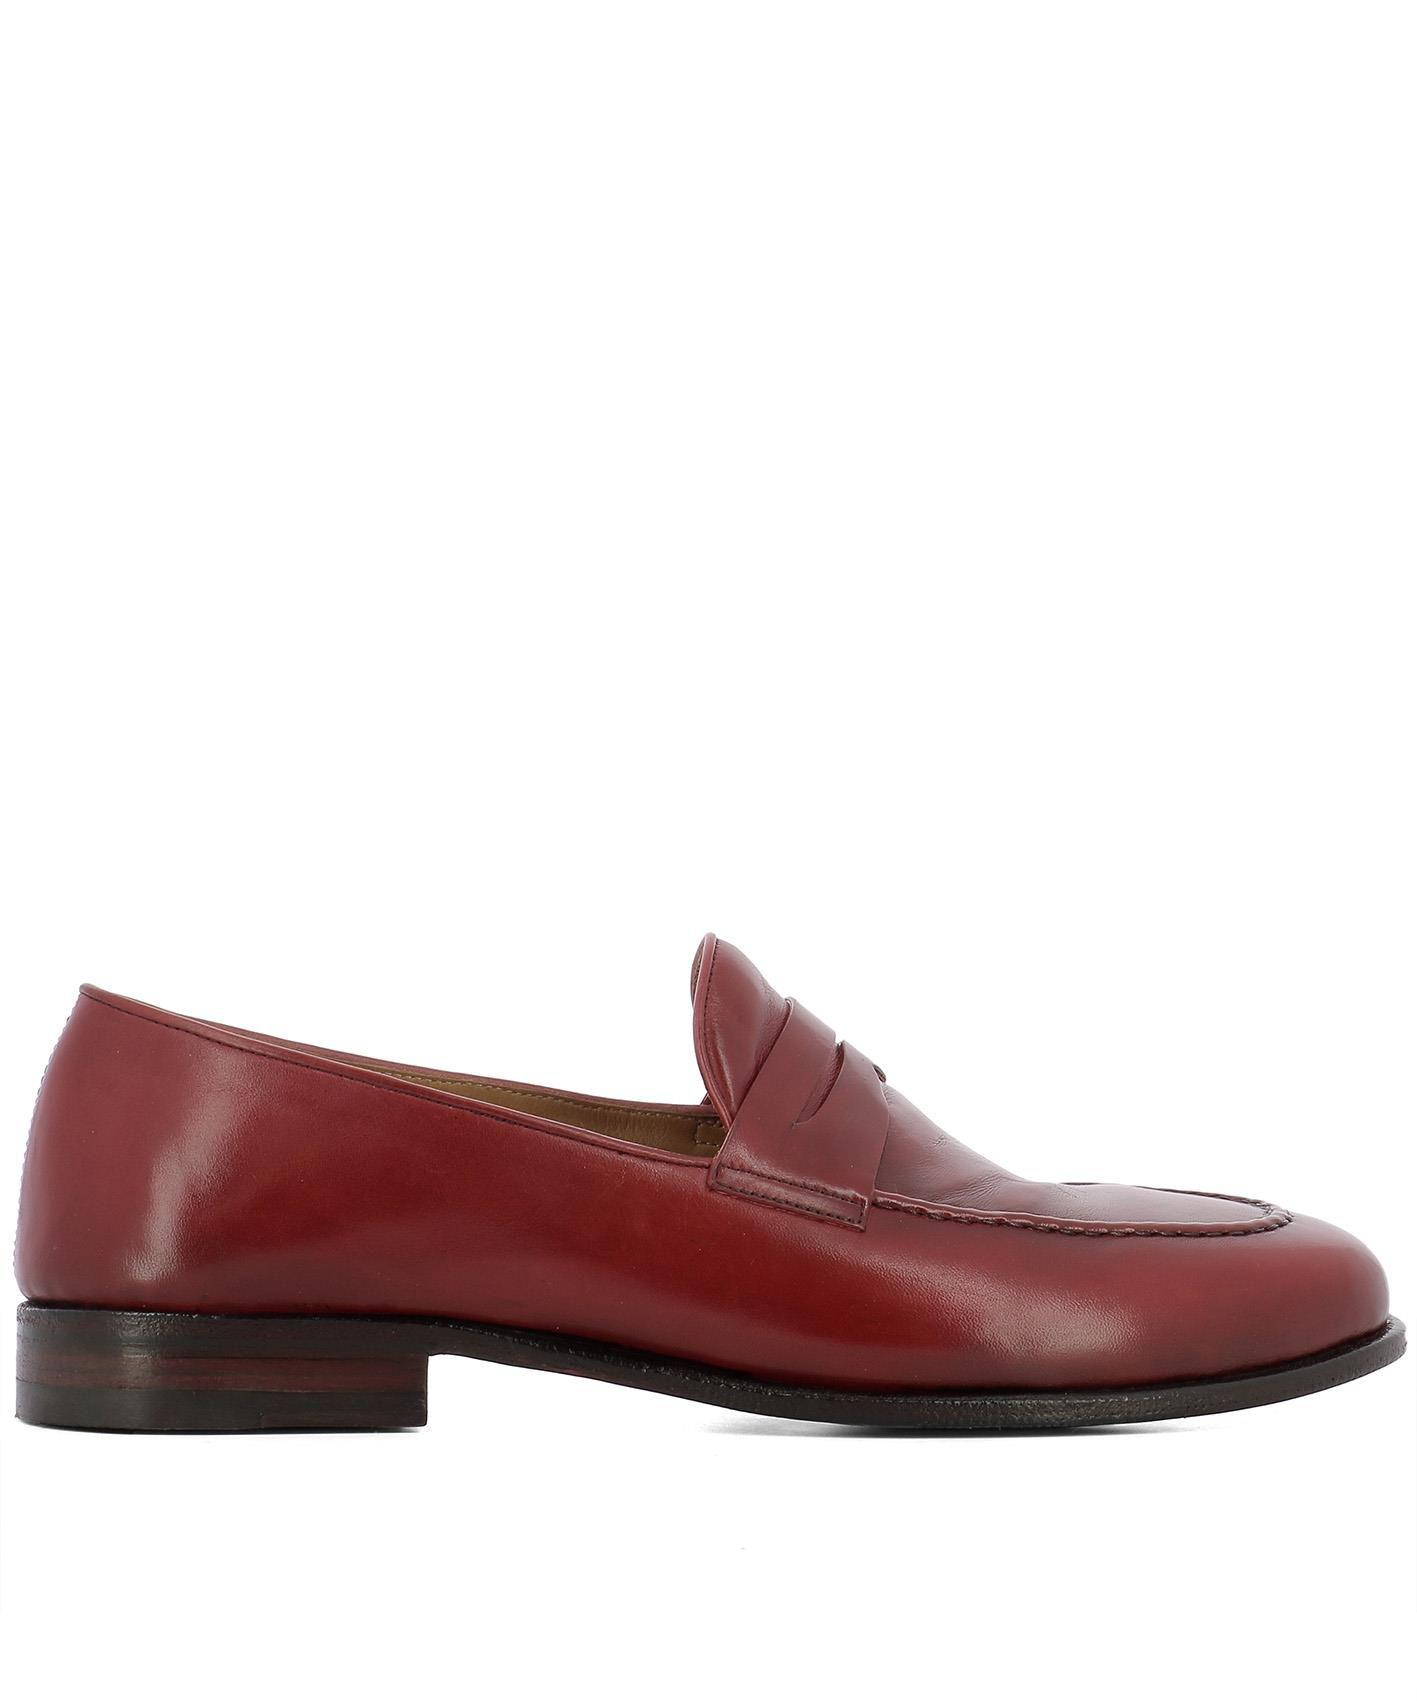 874b654d1bf Lyst - Alberto Fasciani Men s Red Leather Loafers in Red for Men